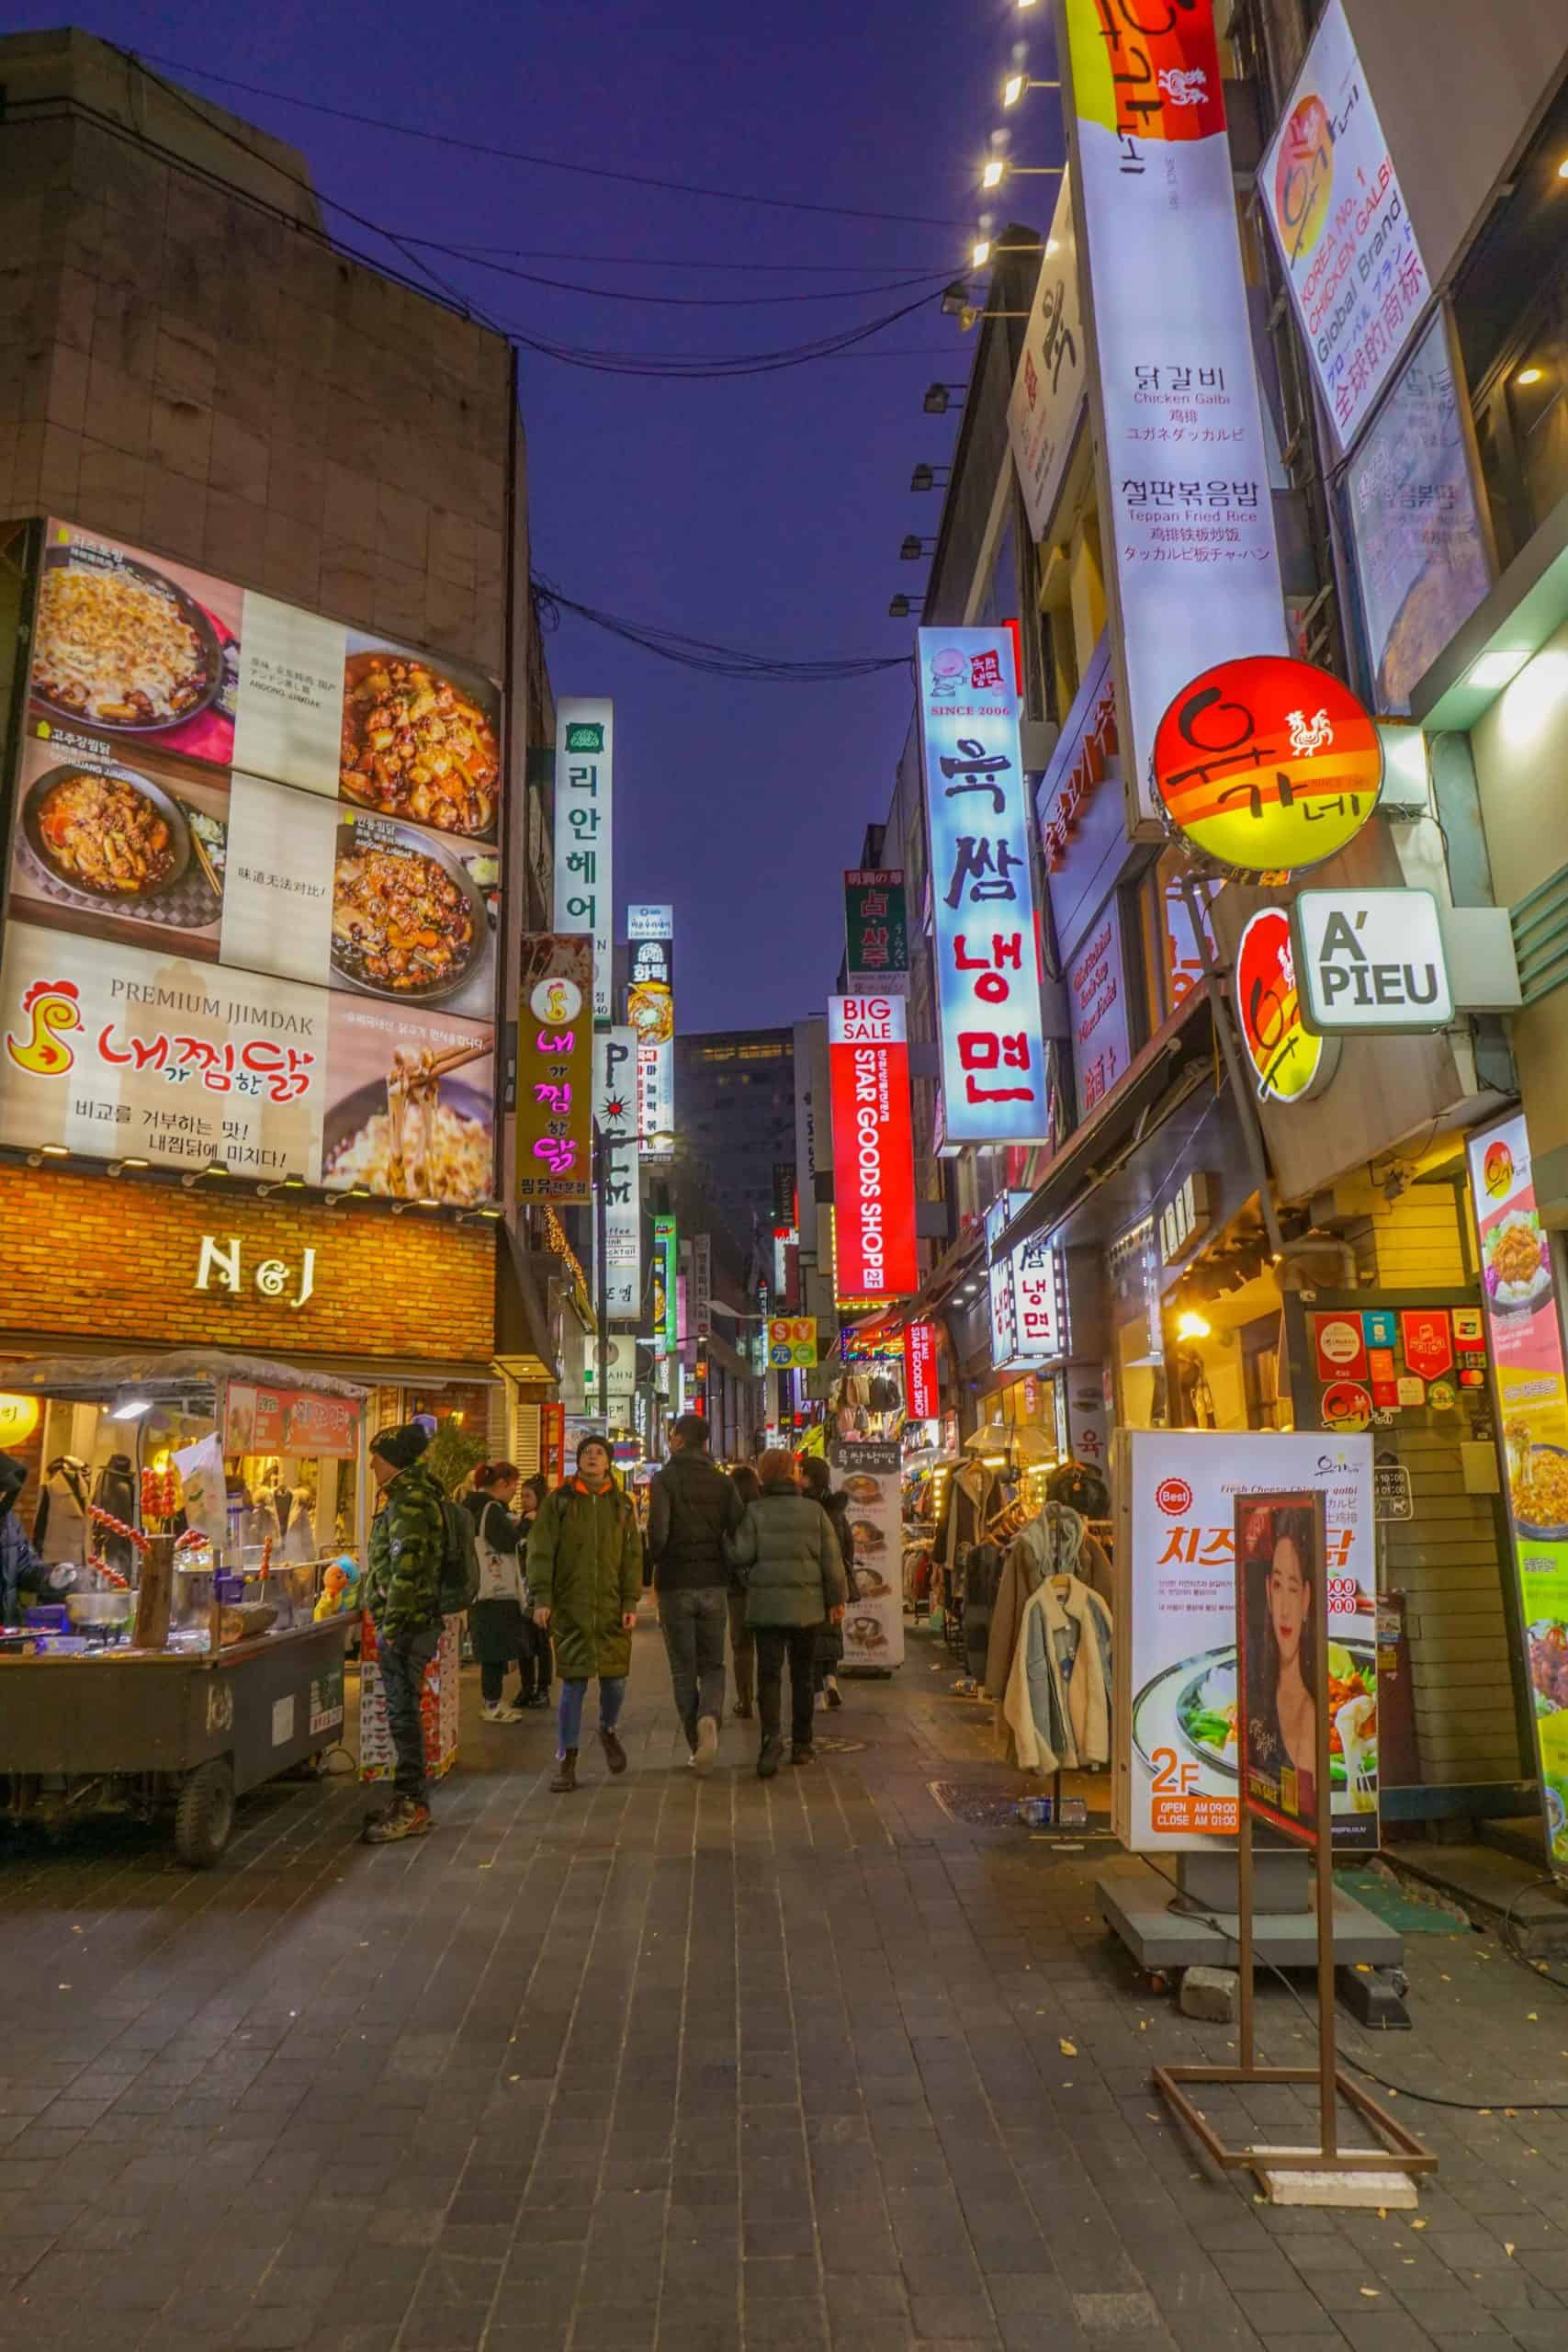 Best Seoul Korea photography spots and instagrammable places to explore on your next Seoul Korea travel. These are some of the things to do in Seoul, while taking amazing Seoul photography. #Seoul #korea #photography